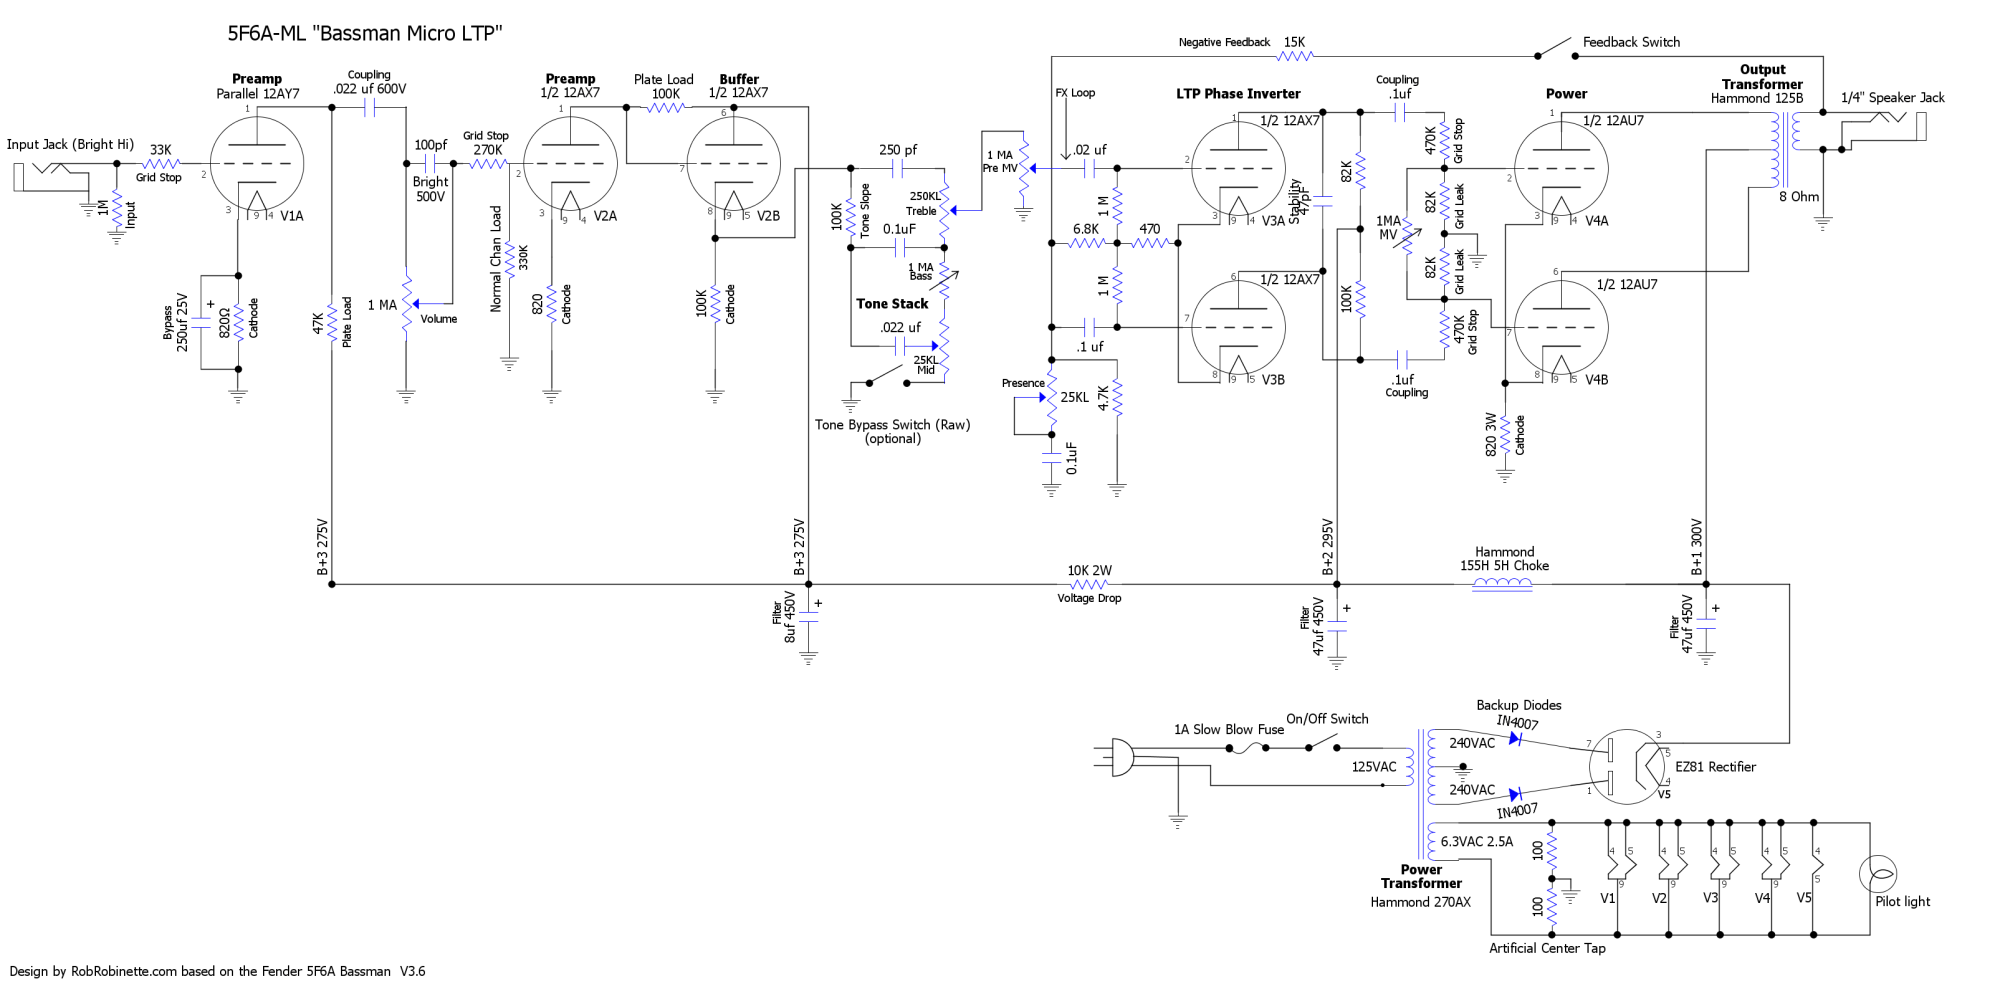 hight resolution of click the image to see the hi res jpg click here to see the hi res schematic pdf file click here for the diylc schematic layout file